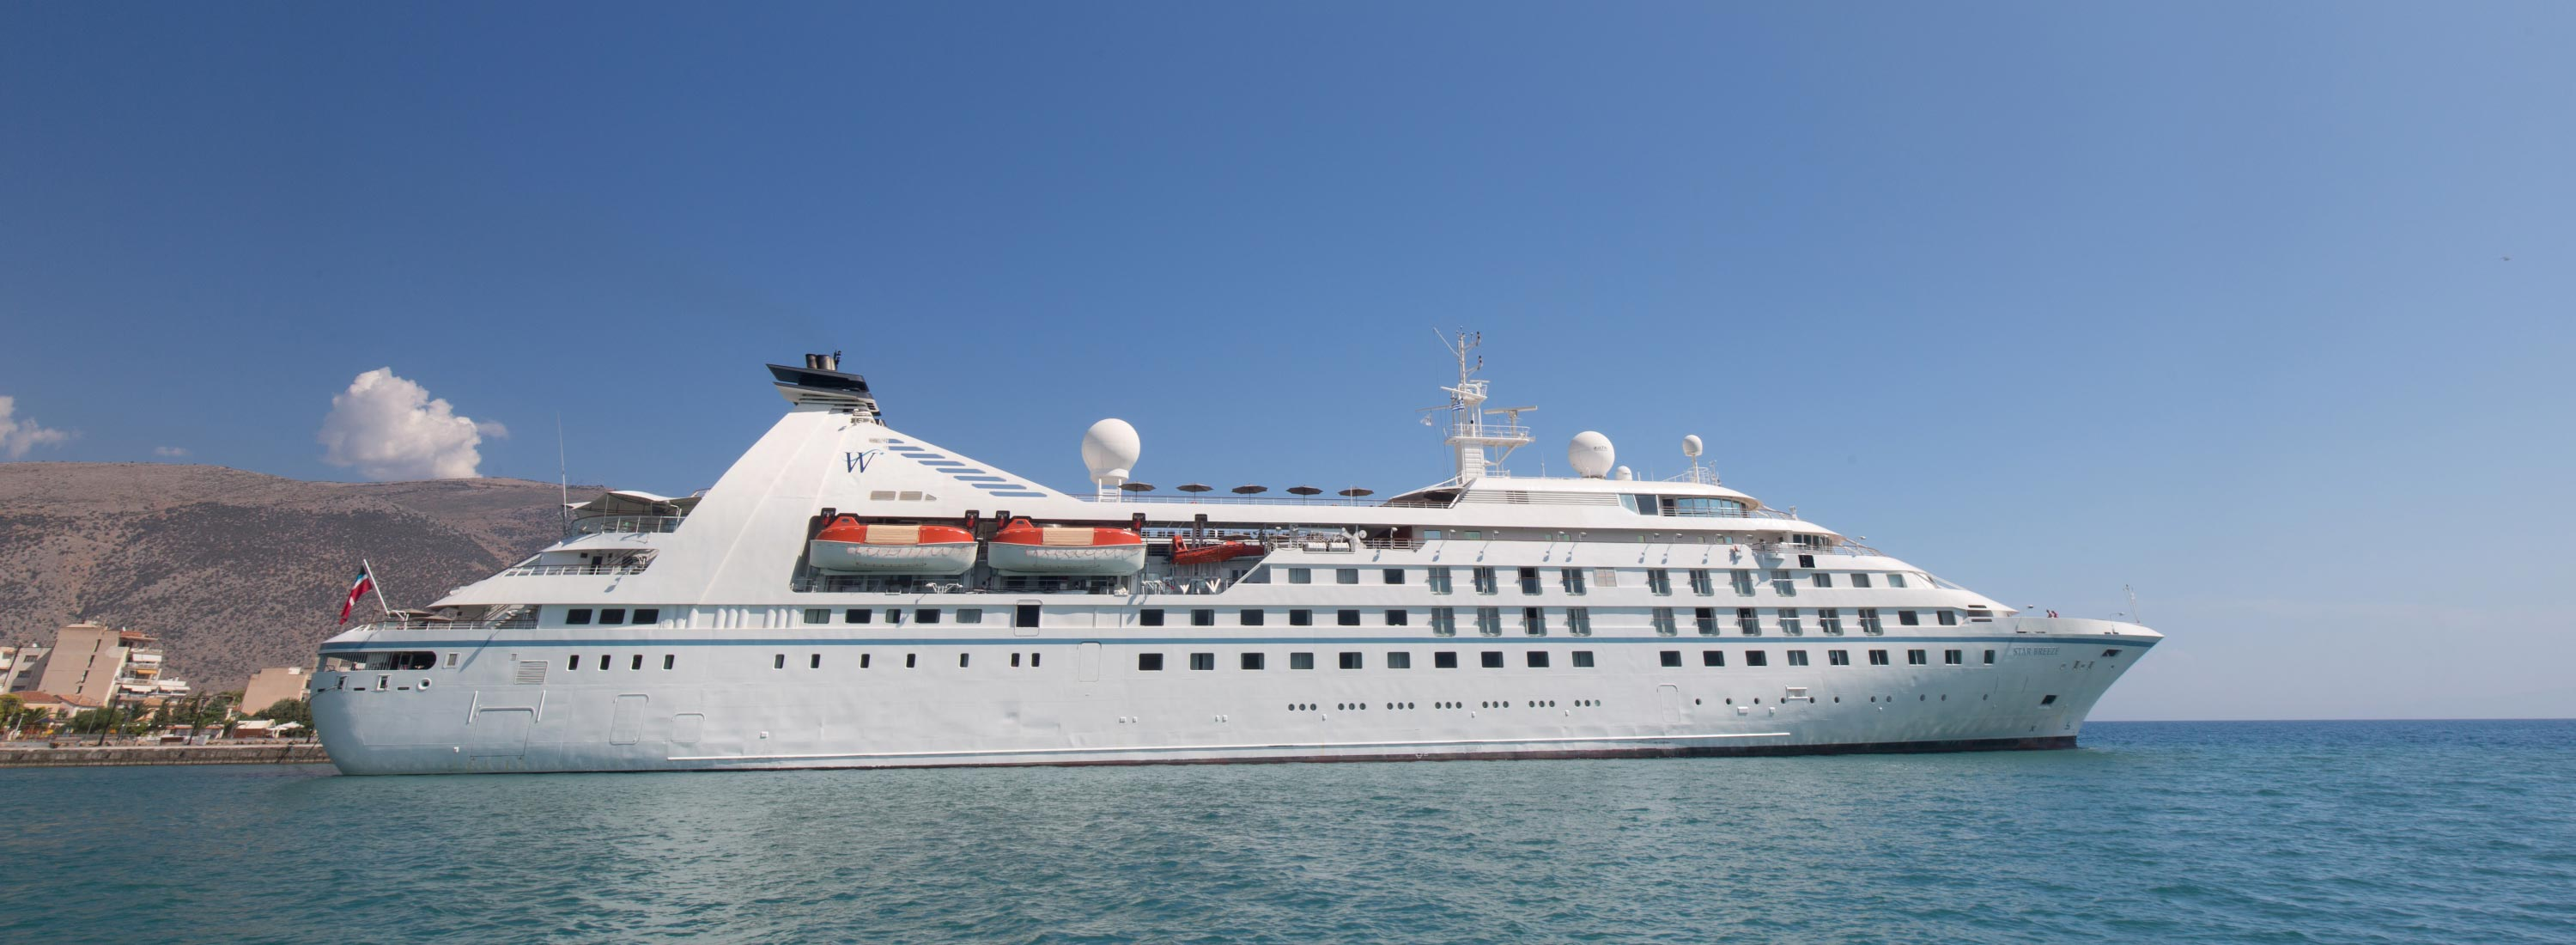 Windstar Cruises -* Inventory Reduction & Liquidation Sale